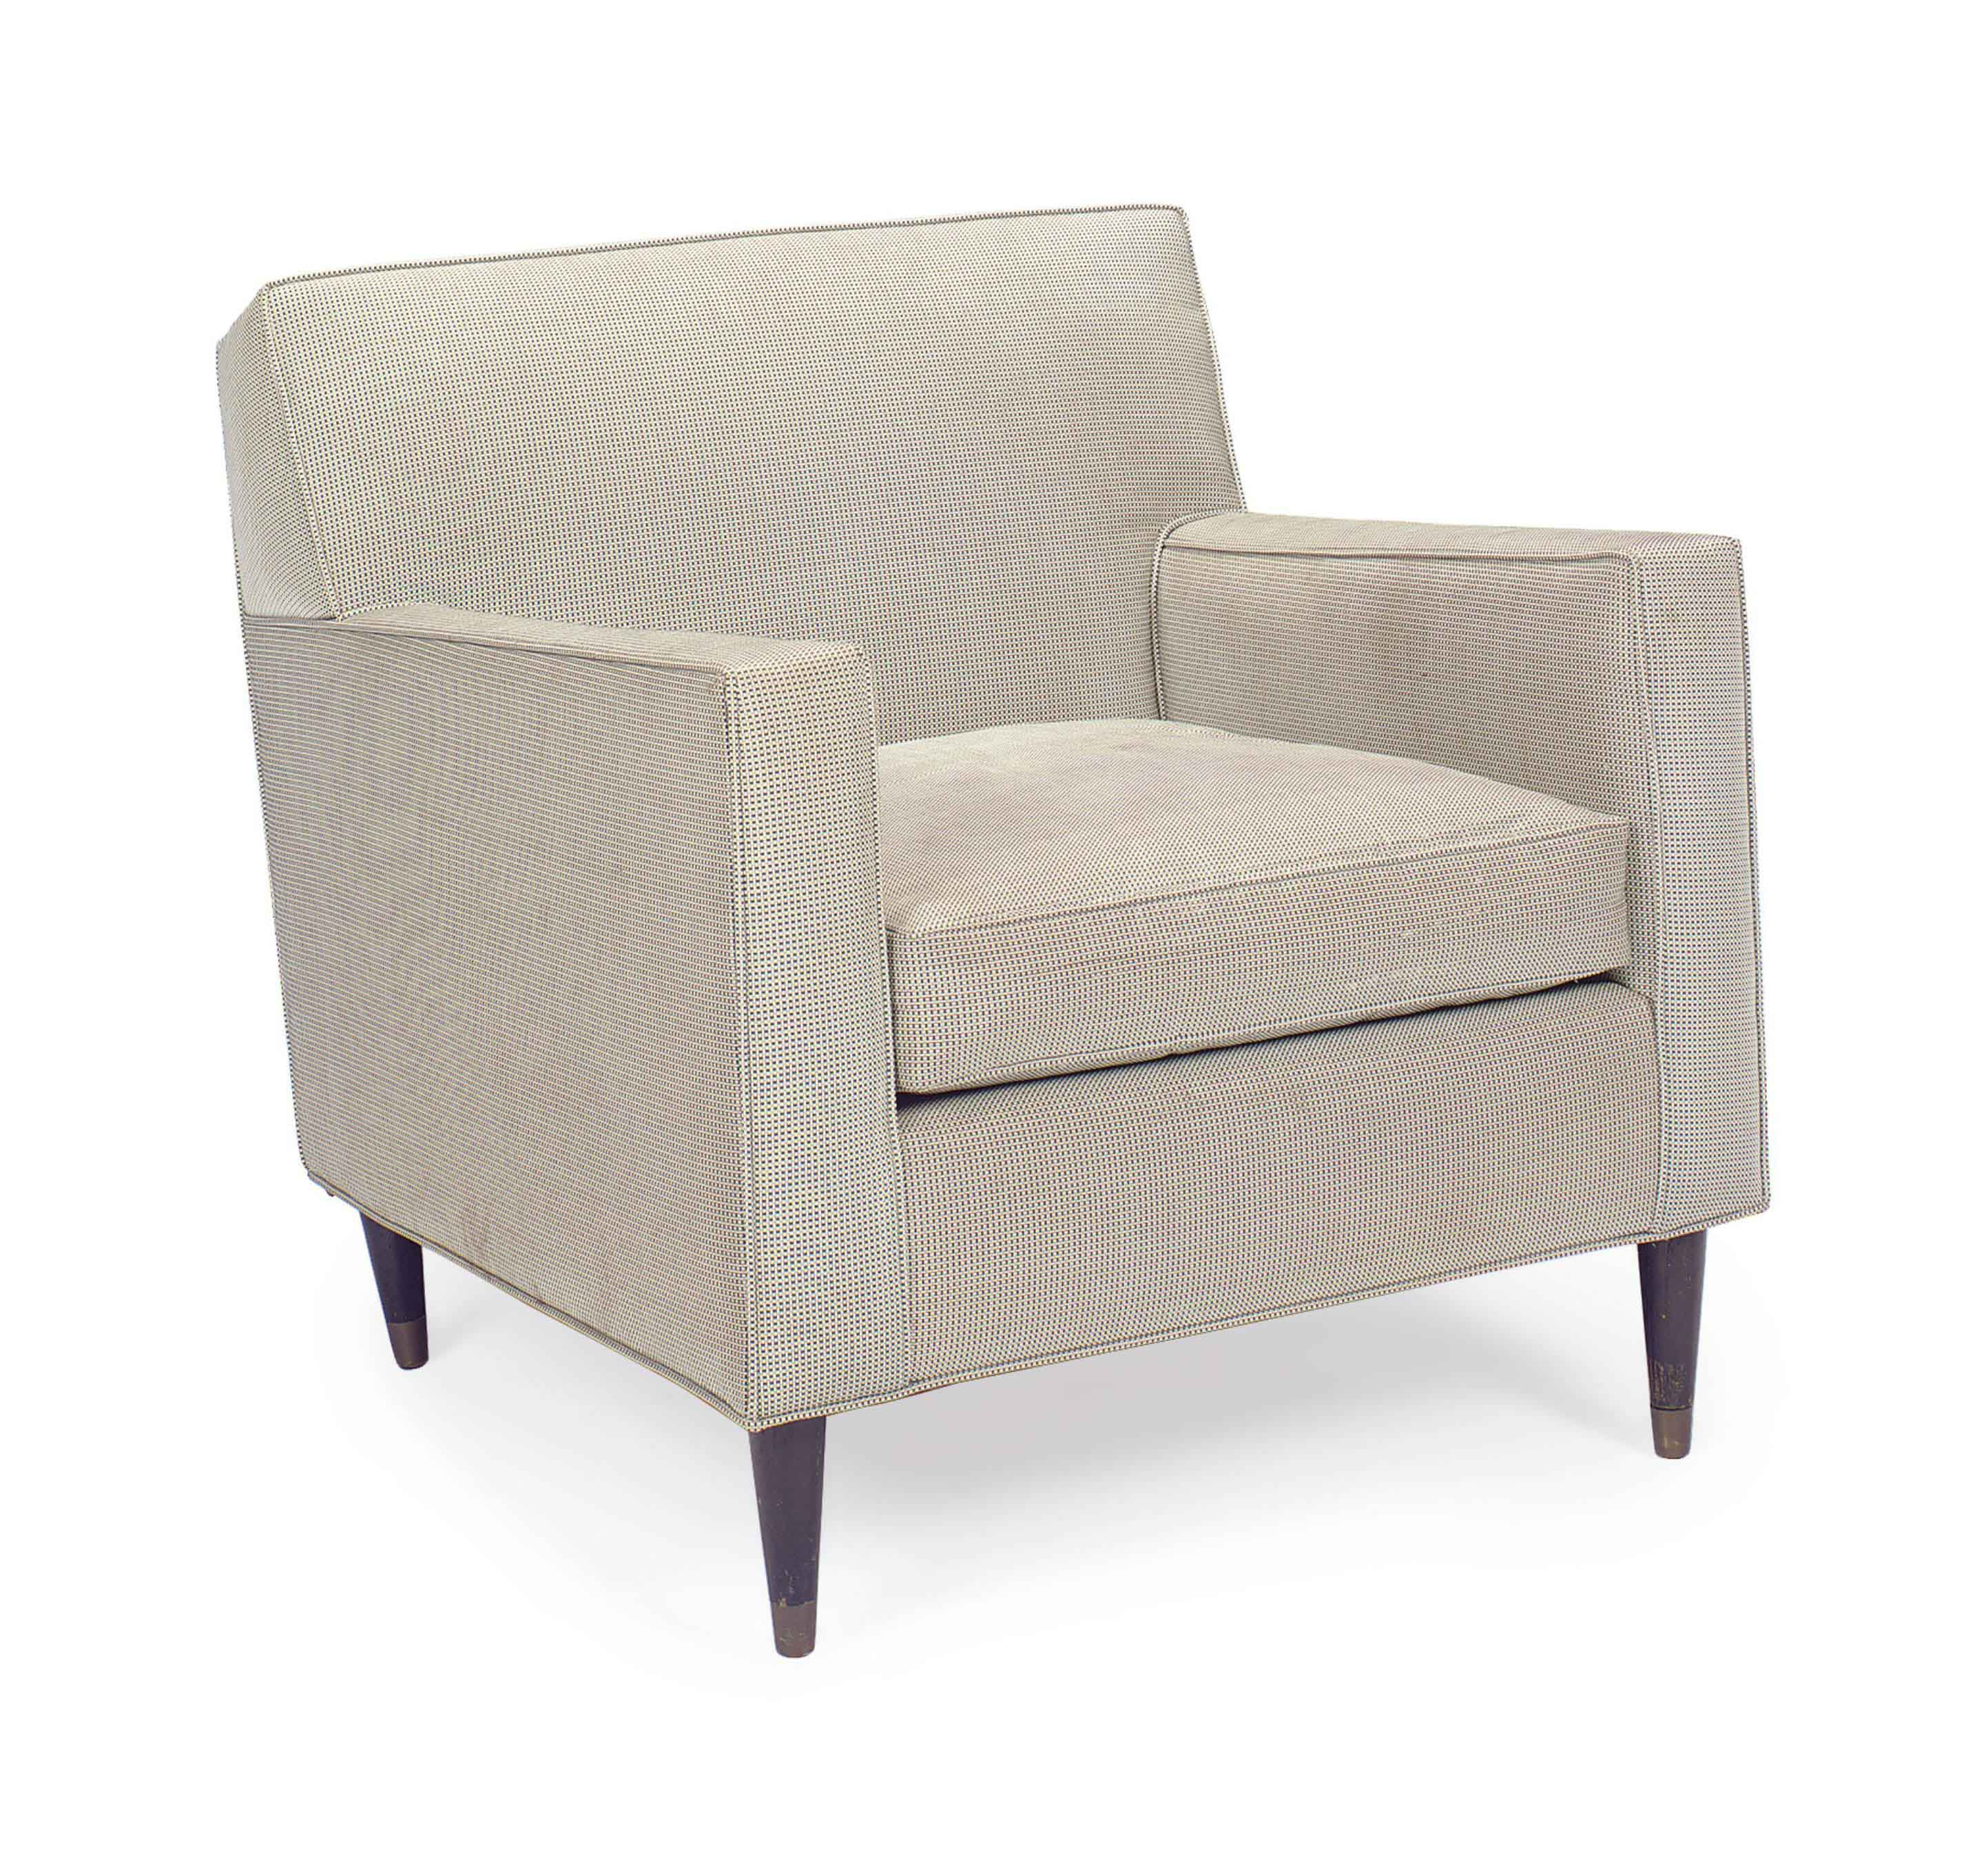 A BEIGE AND BLACK WOVEN CHECK-UPHOLSTERED 'SENIAH' CHAIR,